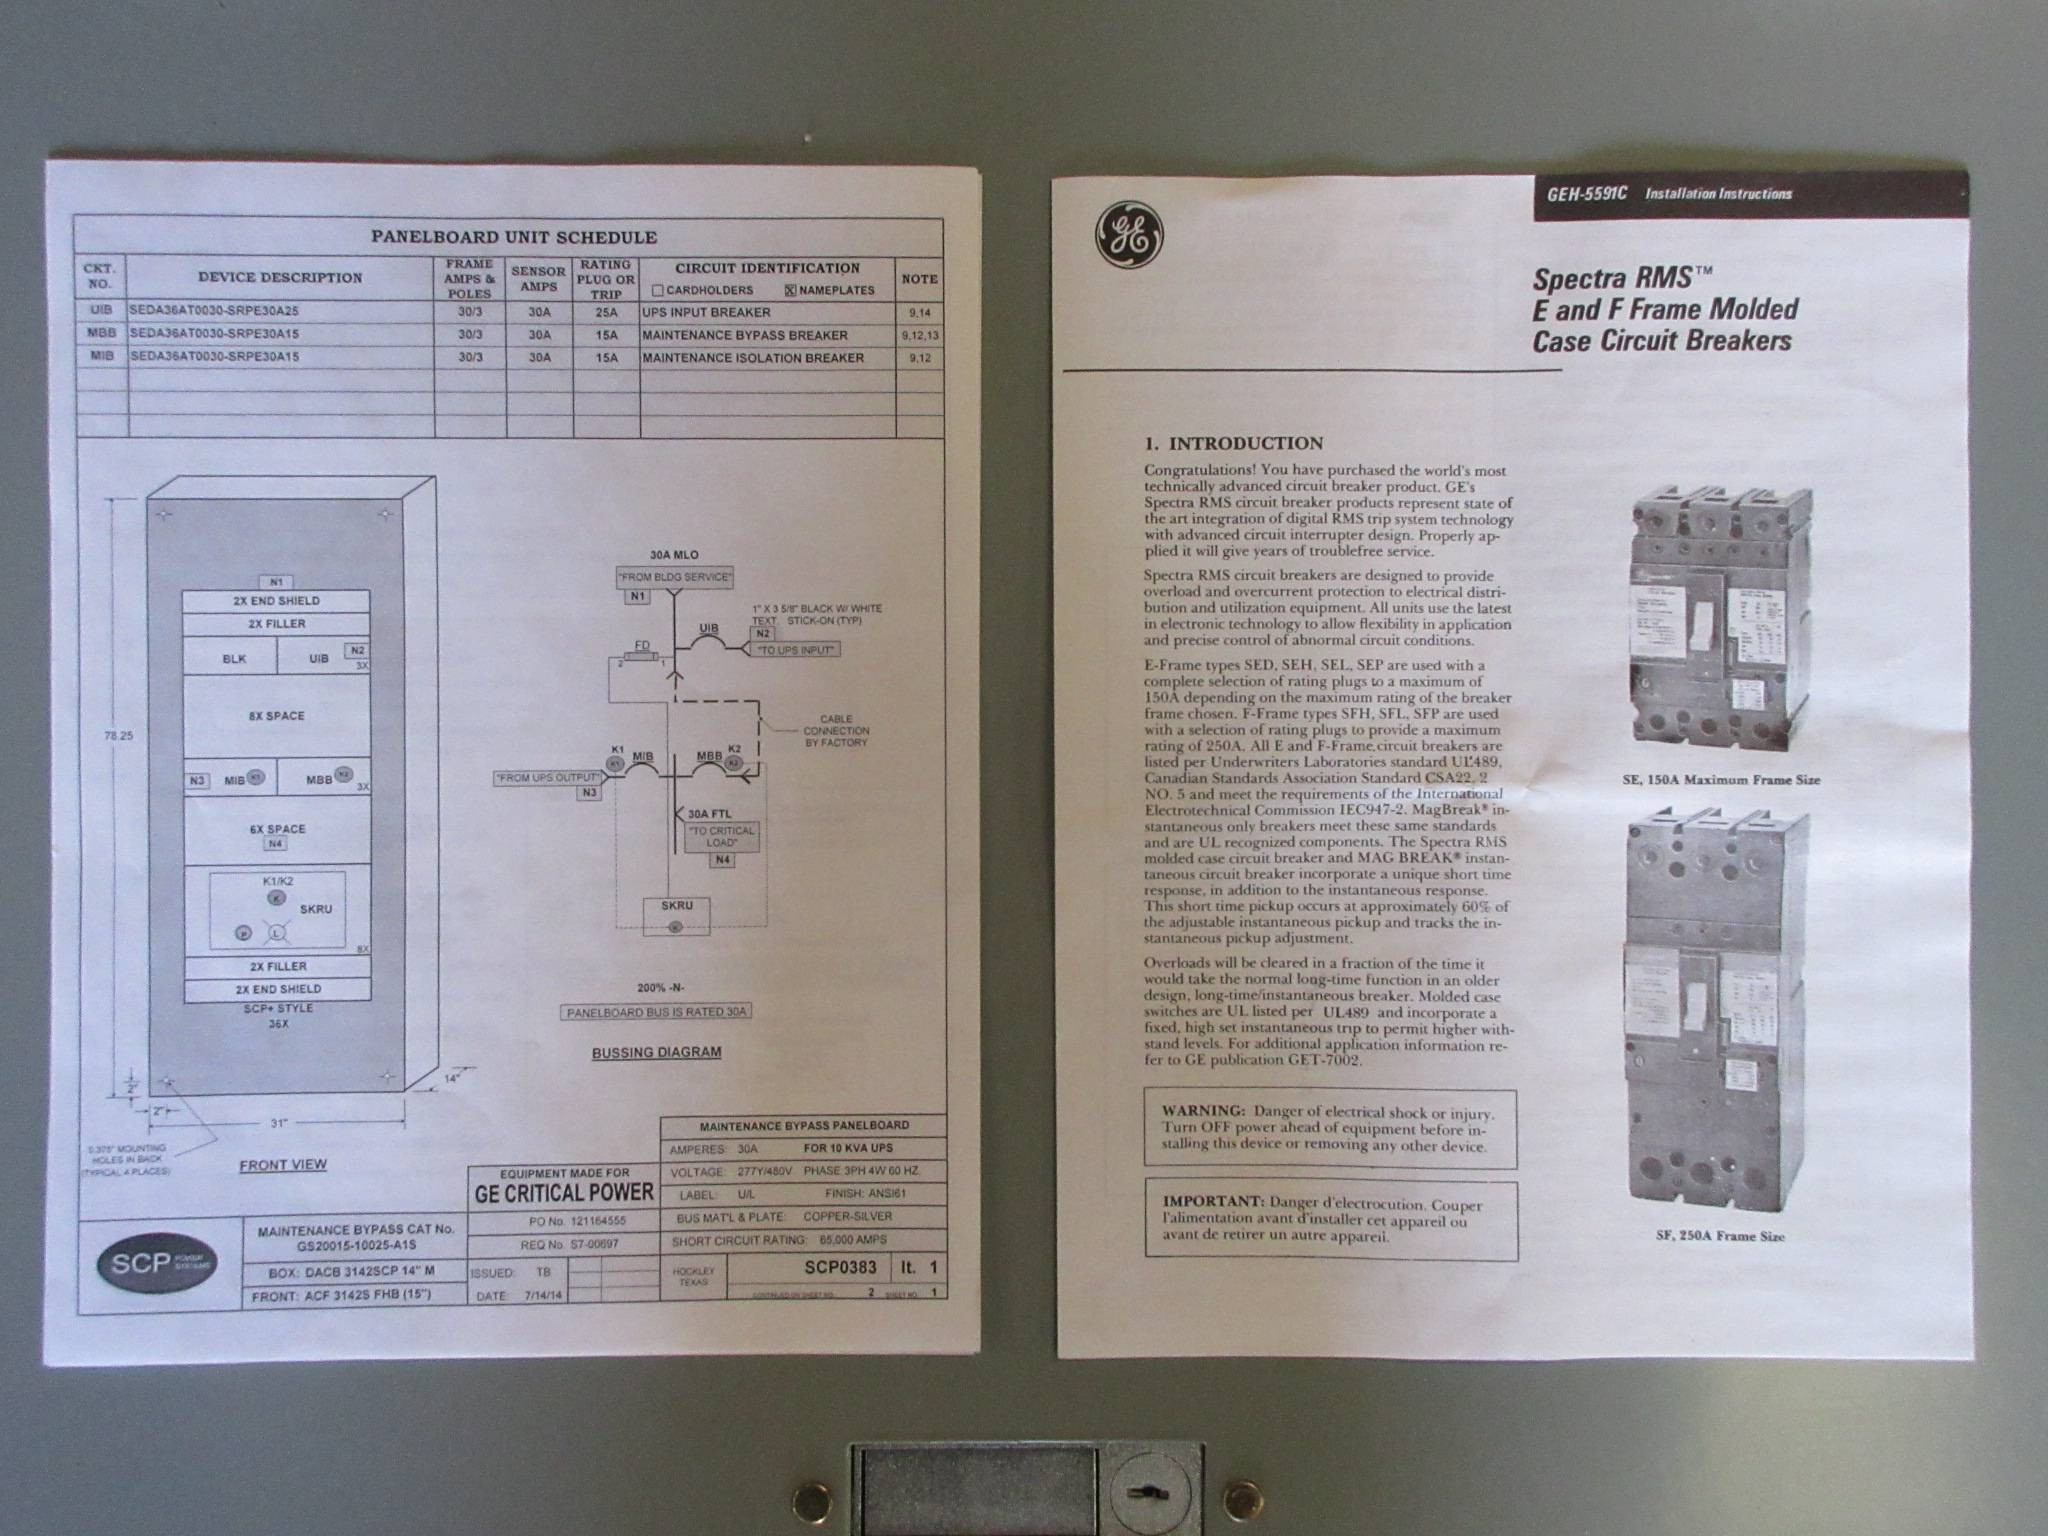 Ge Spectra New Scp Plus Ups Maintenance Bypass Panelboard 30 Amp Mlo Wiring Diagram Https D3d71ba2asa5ozcloudfrontnet 12014161 Images Tk2697